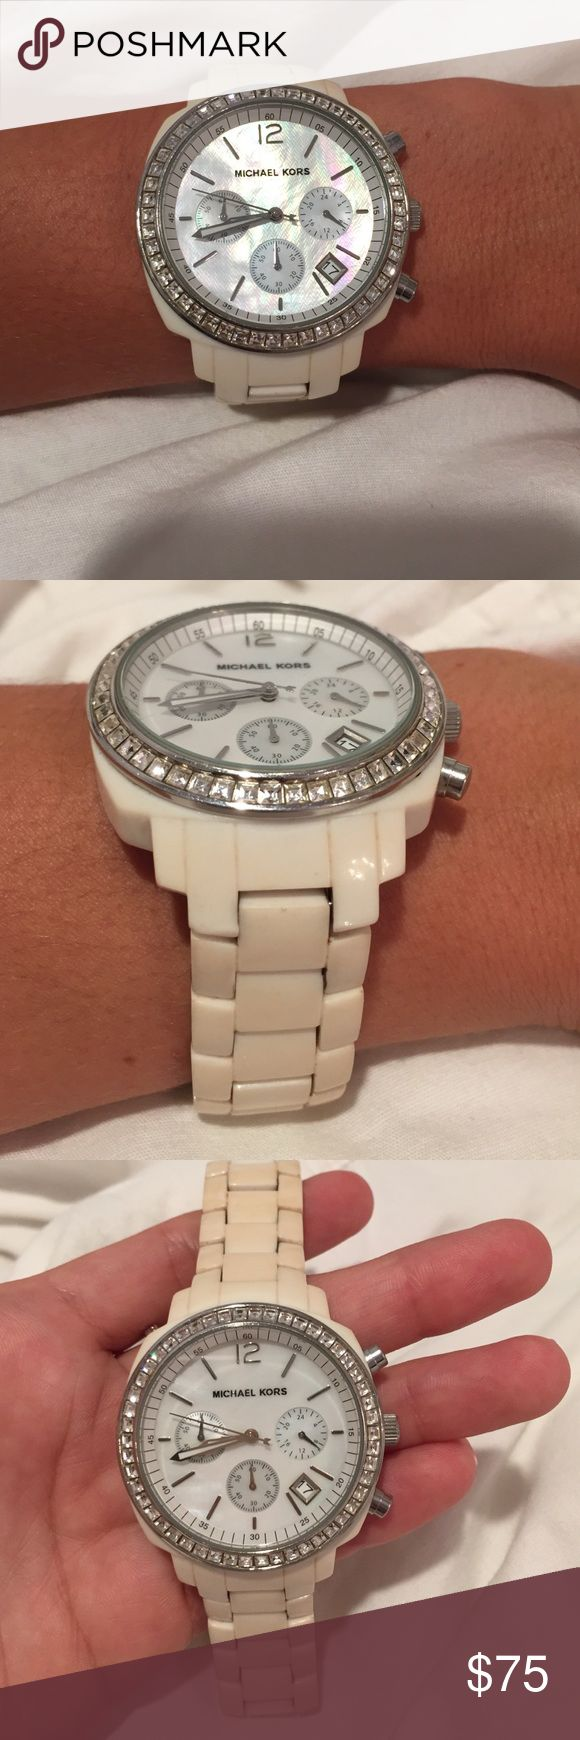 Michael Kors White Women's Watch Michael Kors White Women's Watch. Battery needs to be replaced, but in good condition. Michael Kors Accessories Watches